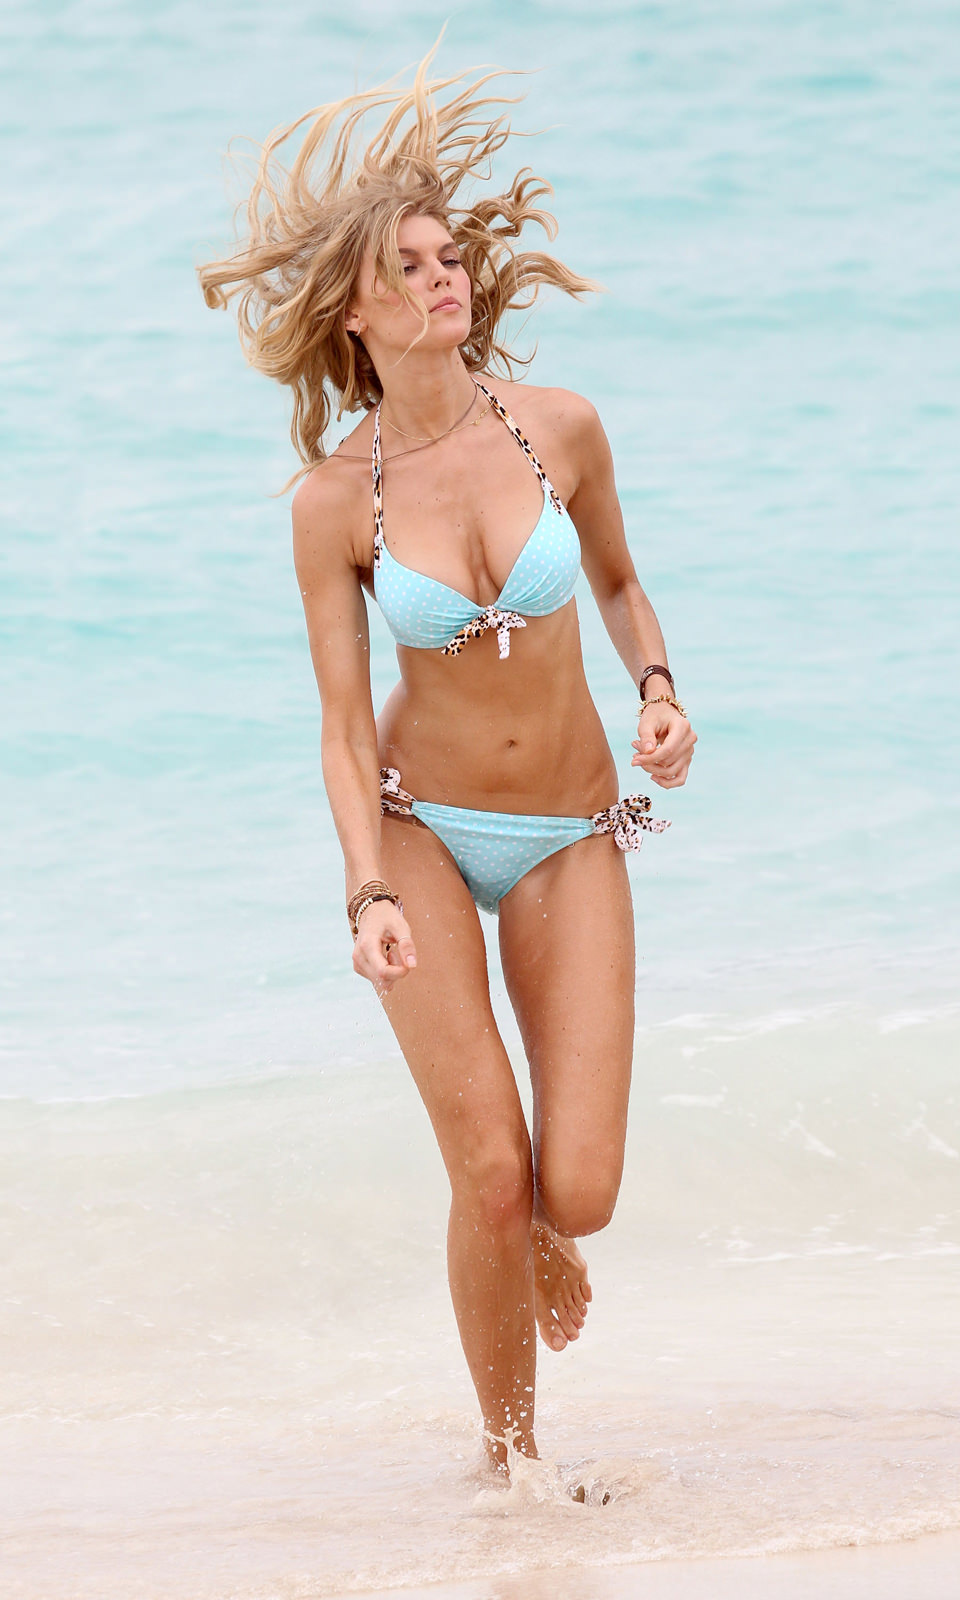 Maryna Linchuk Photo Gallery